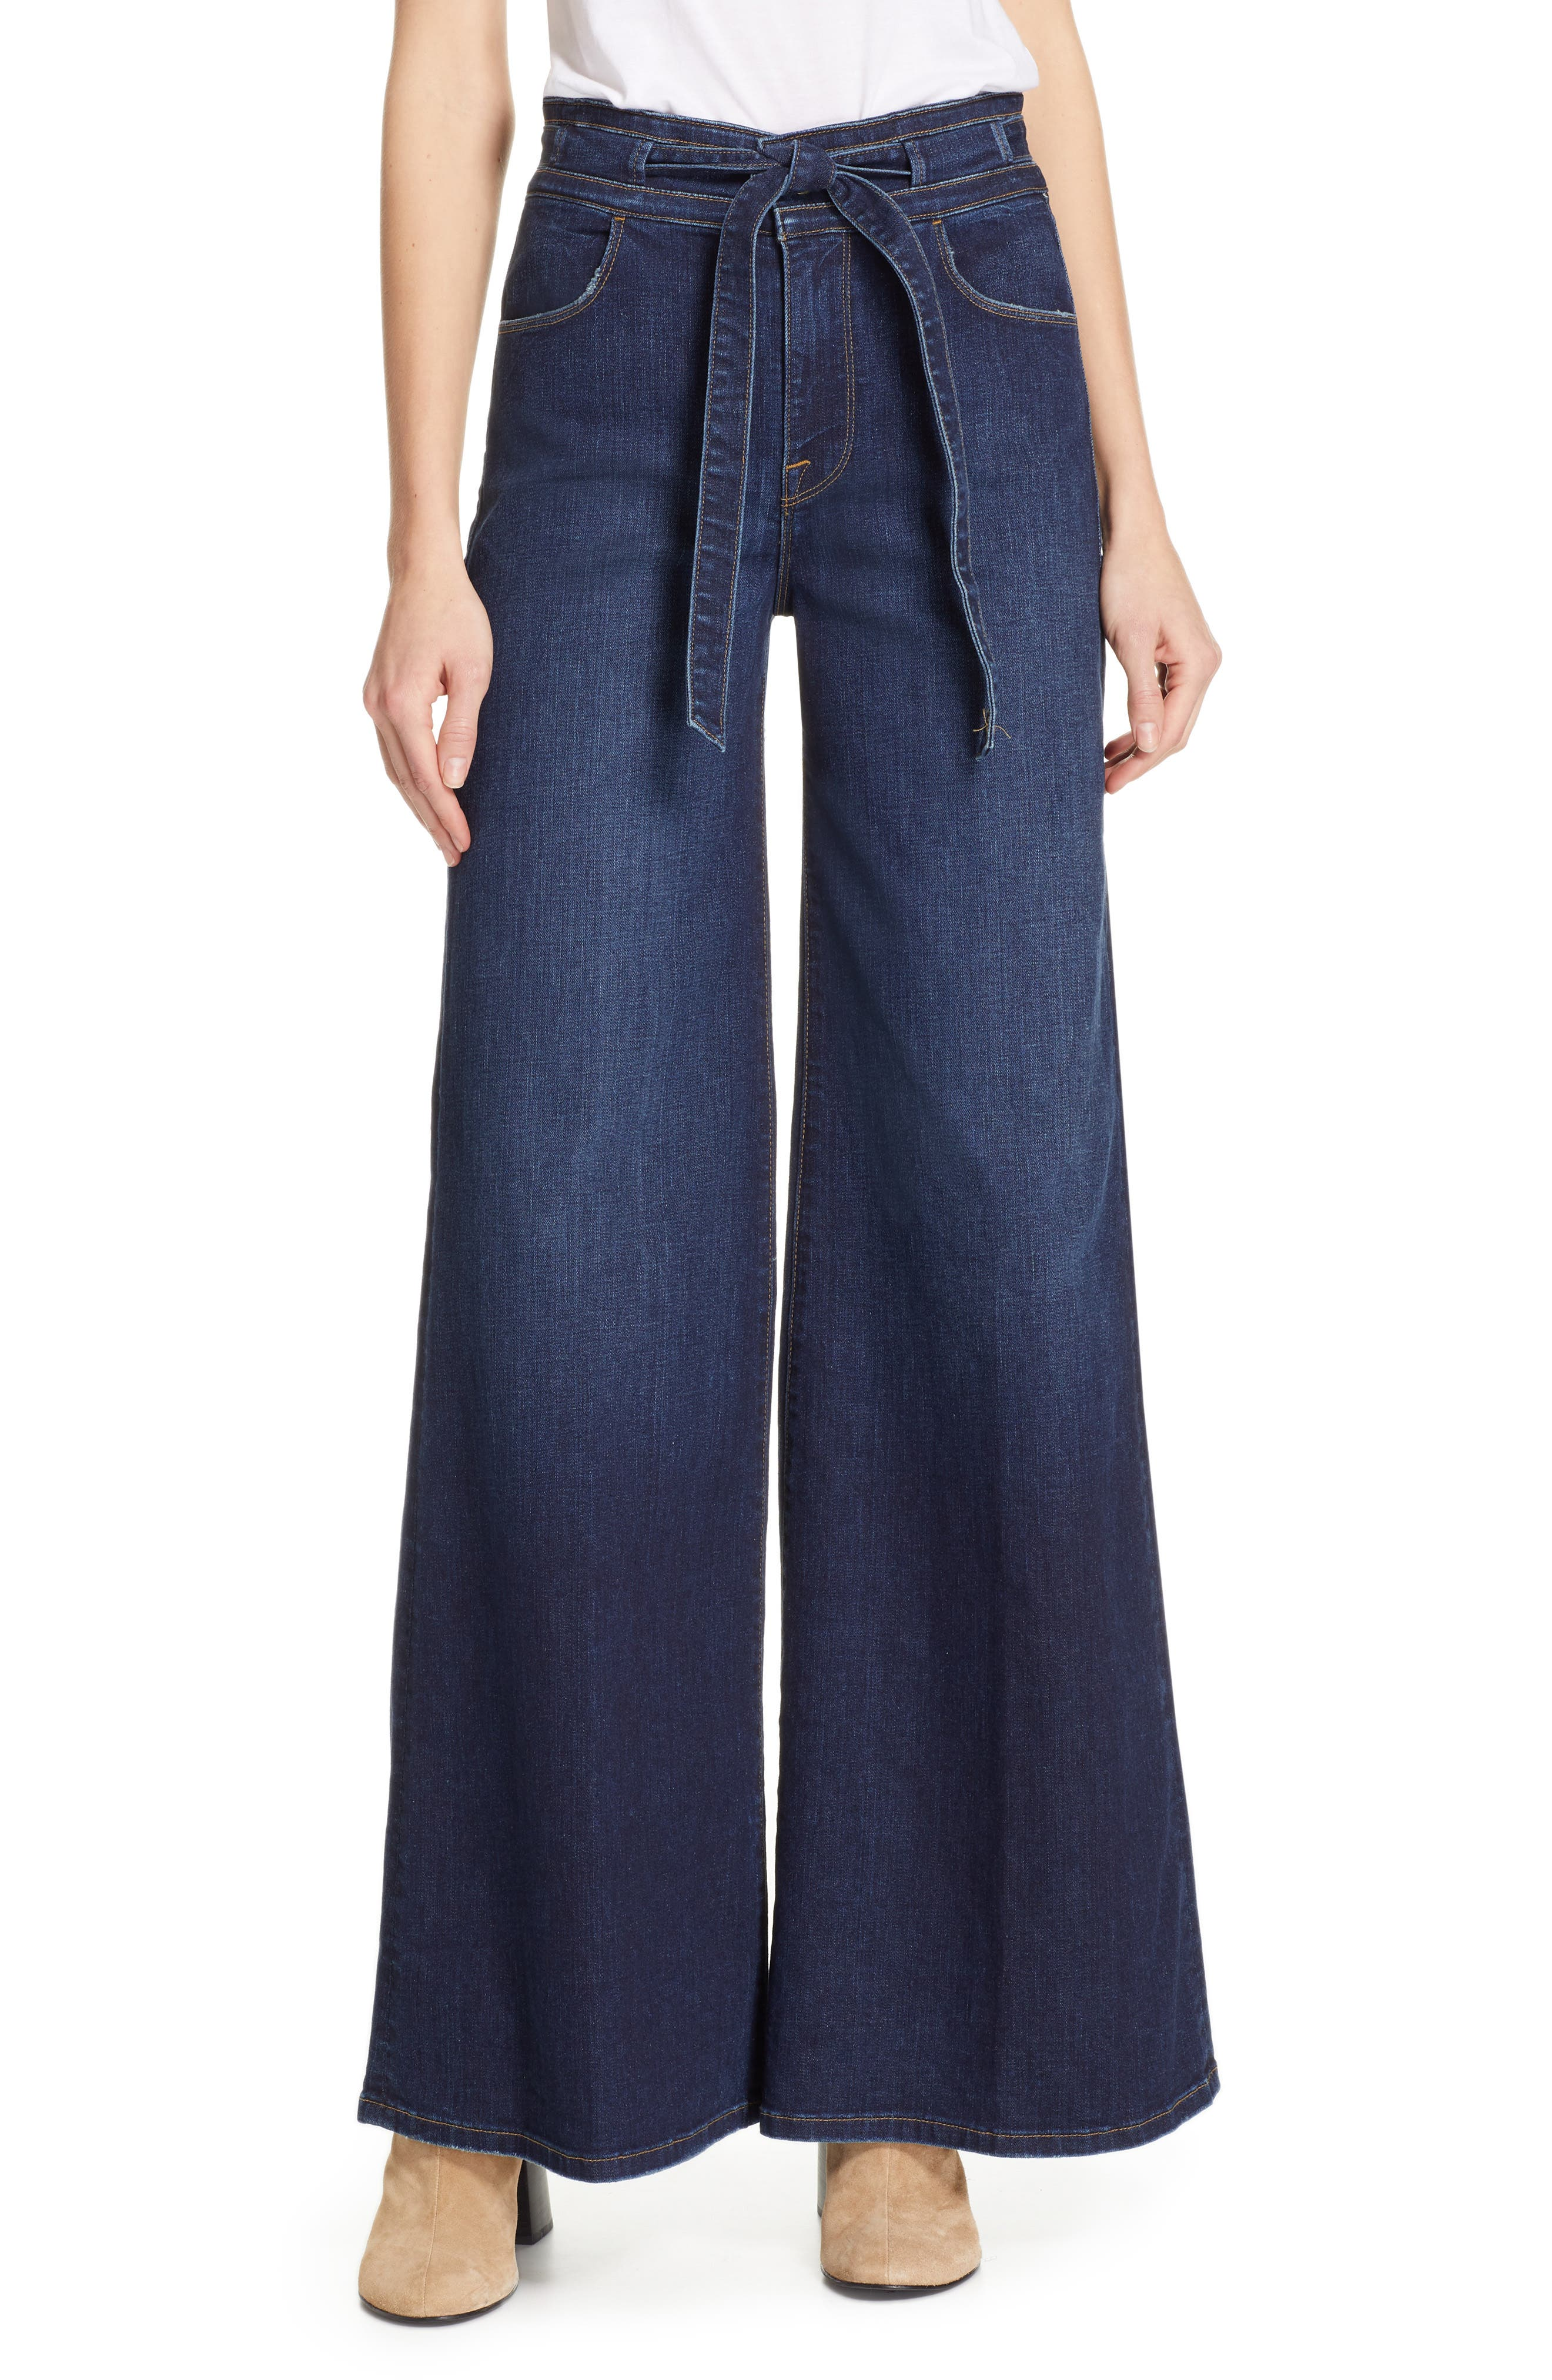 FRAME, Belted Palazzo Jeans, Main thumbnail 1, color, MERIBO